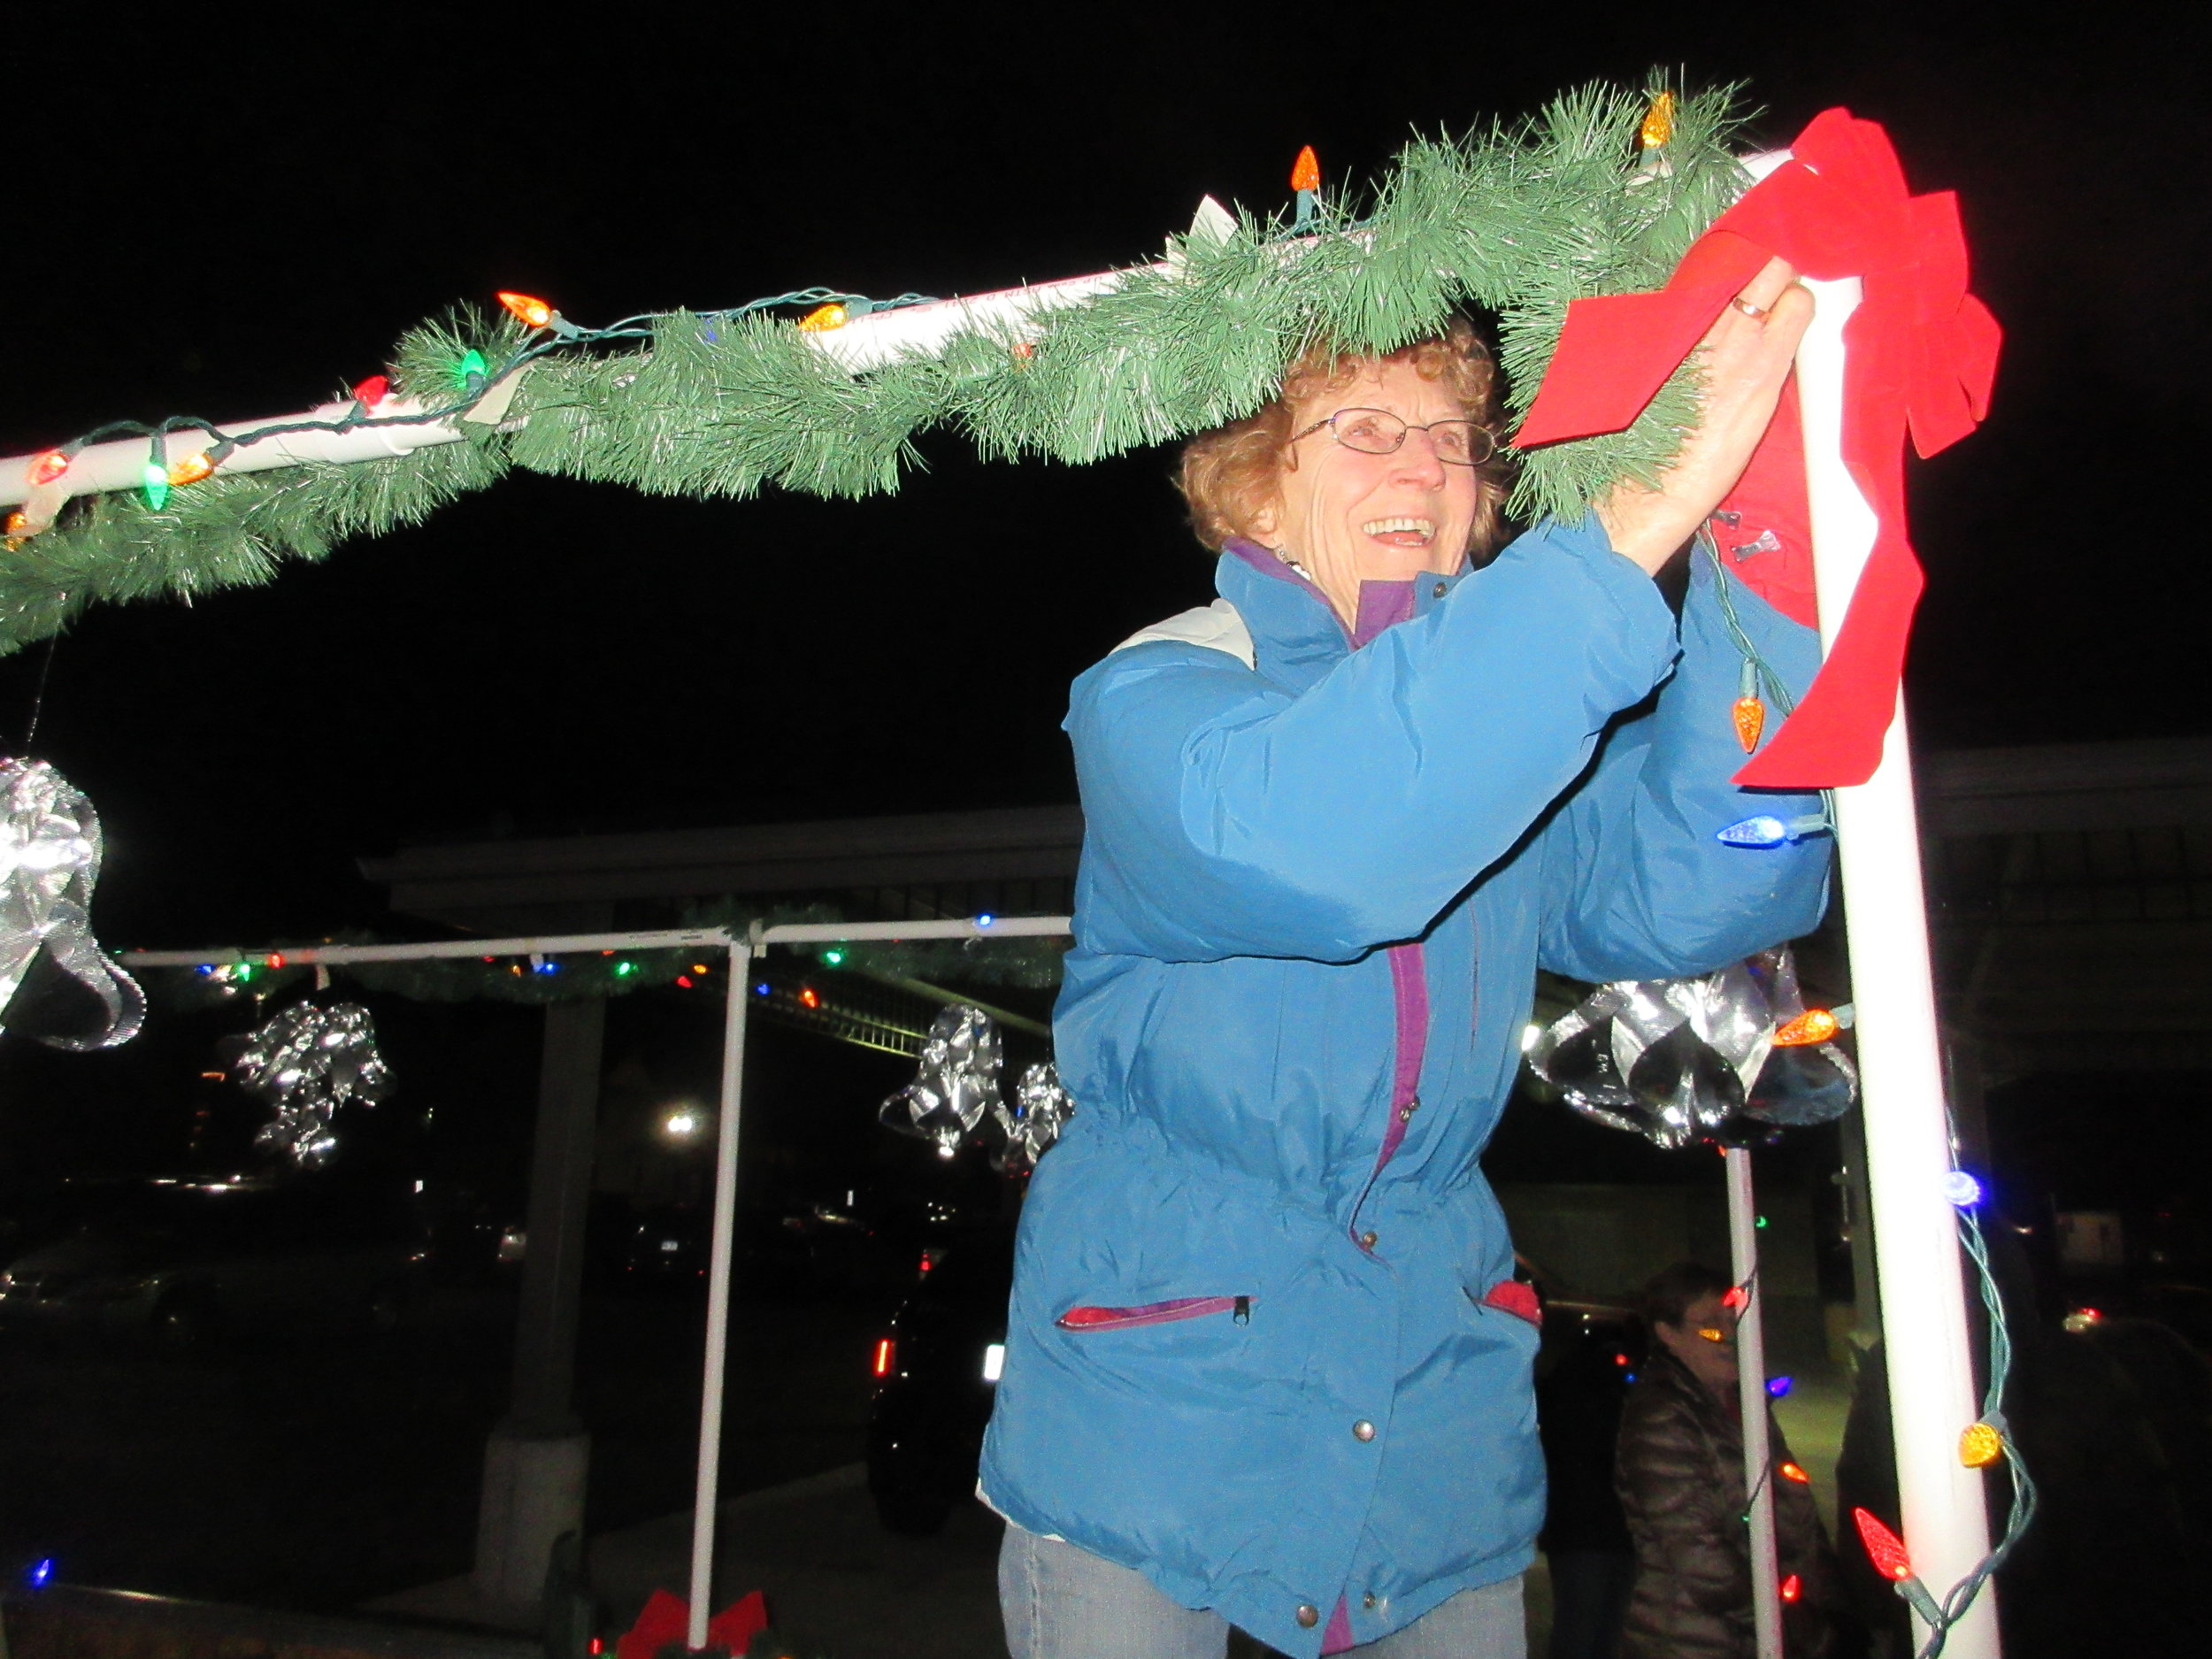 A Civitan decorates a float for a local holiday parade.